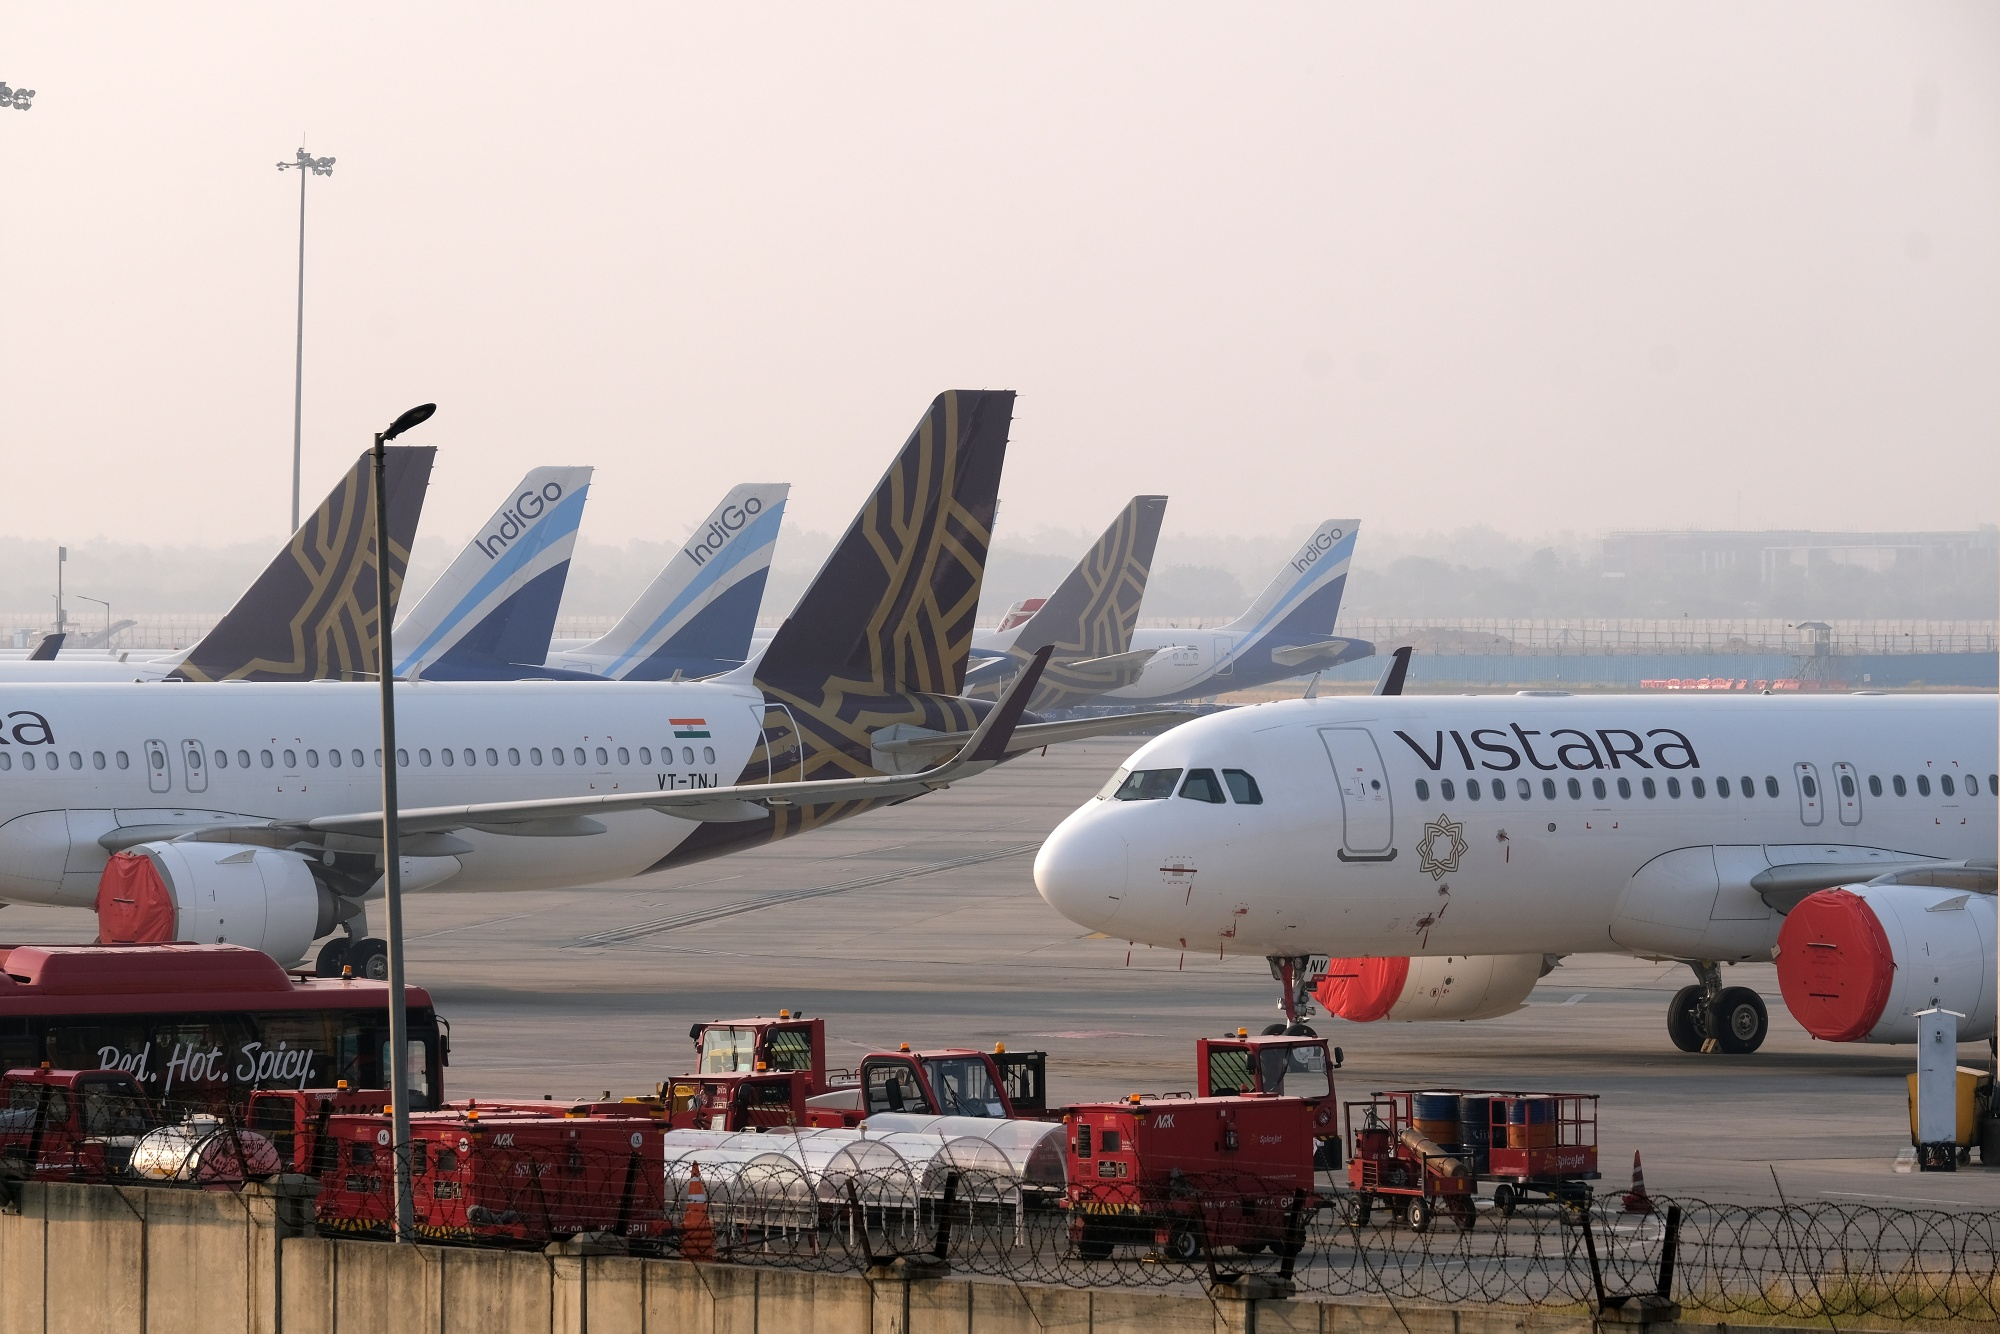 Grounded Aircraft At Delhi Airport As India's Ban on Flying to Stay Until Virus No Longer a Danger